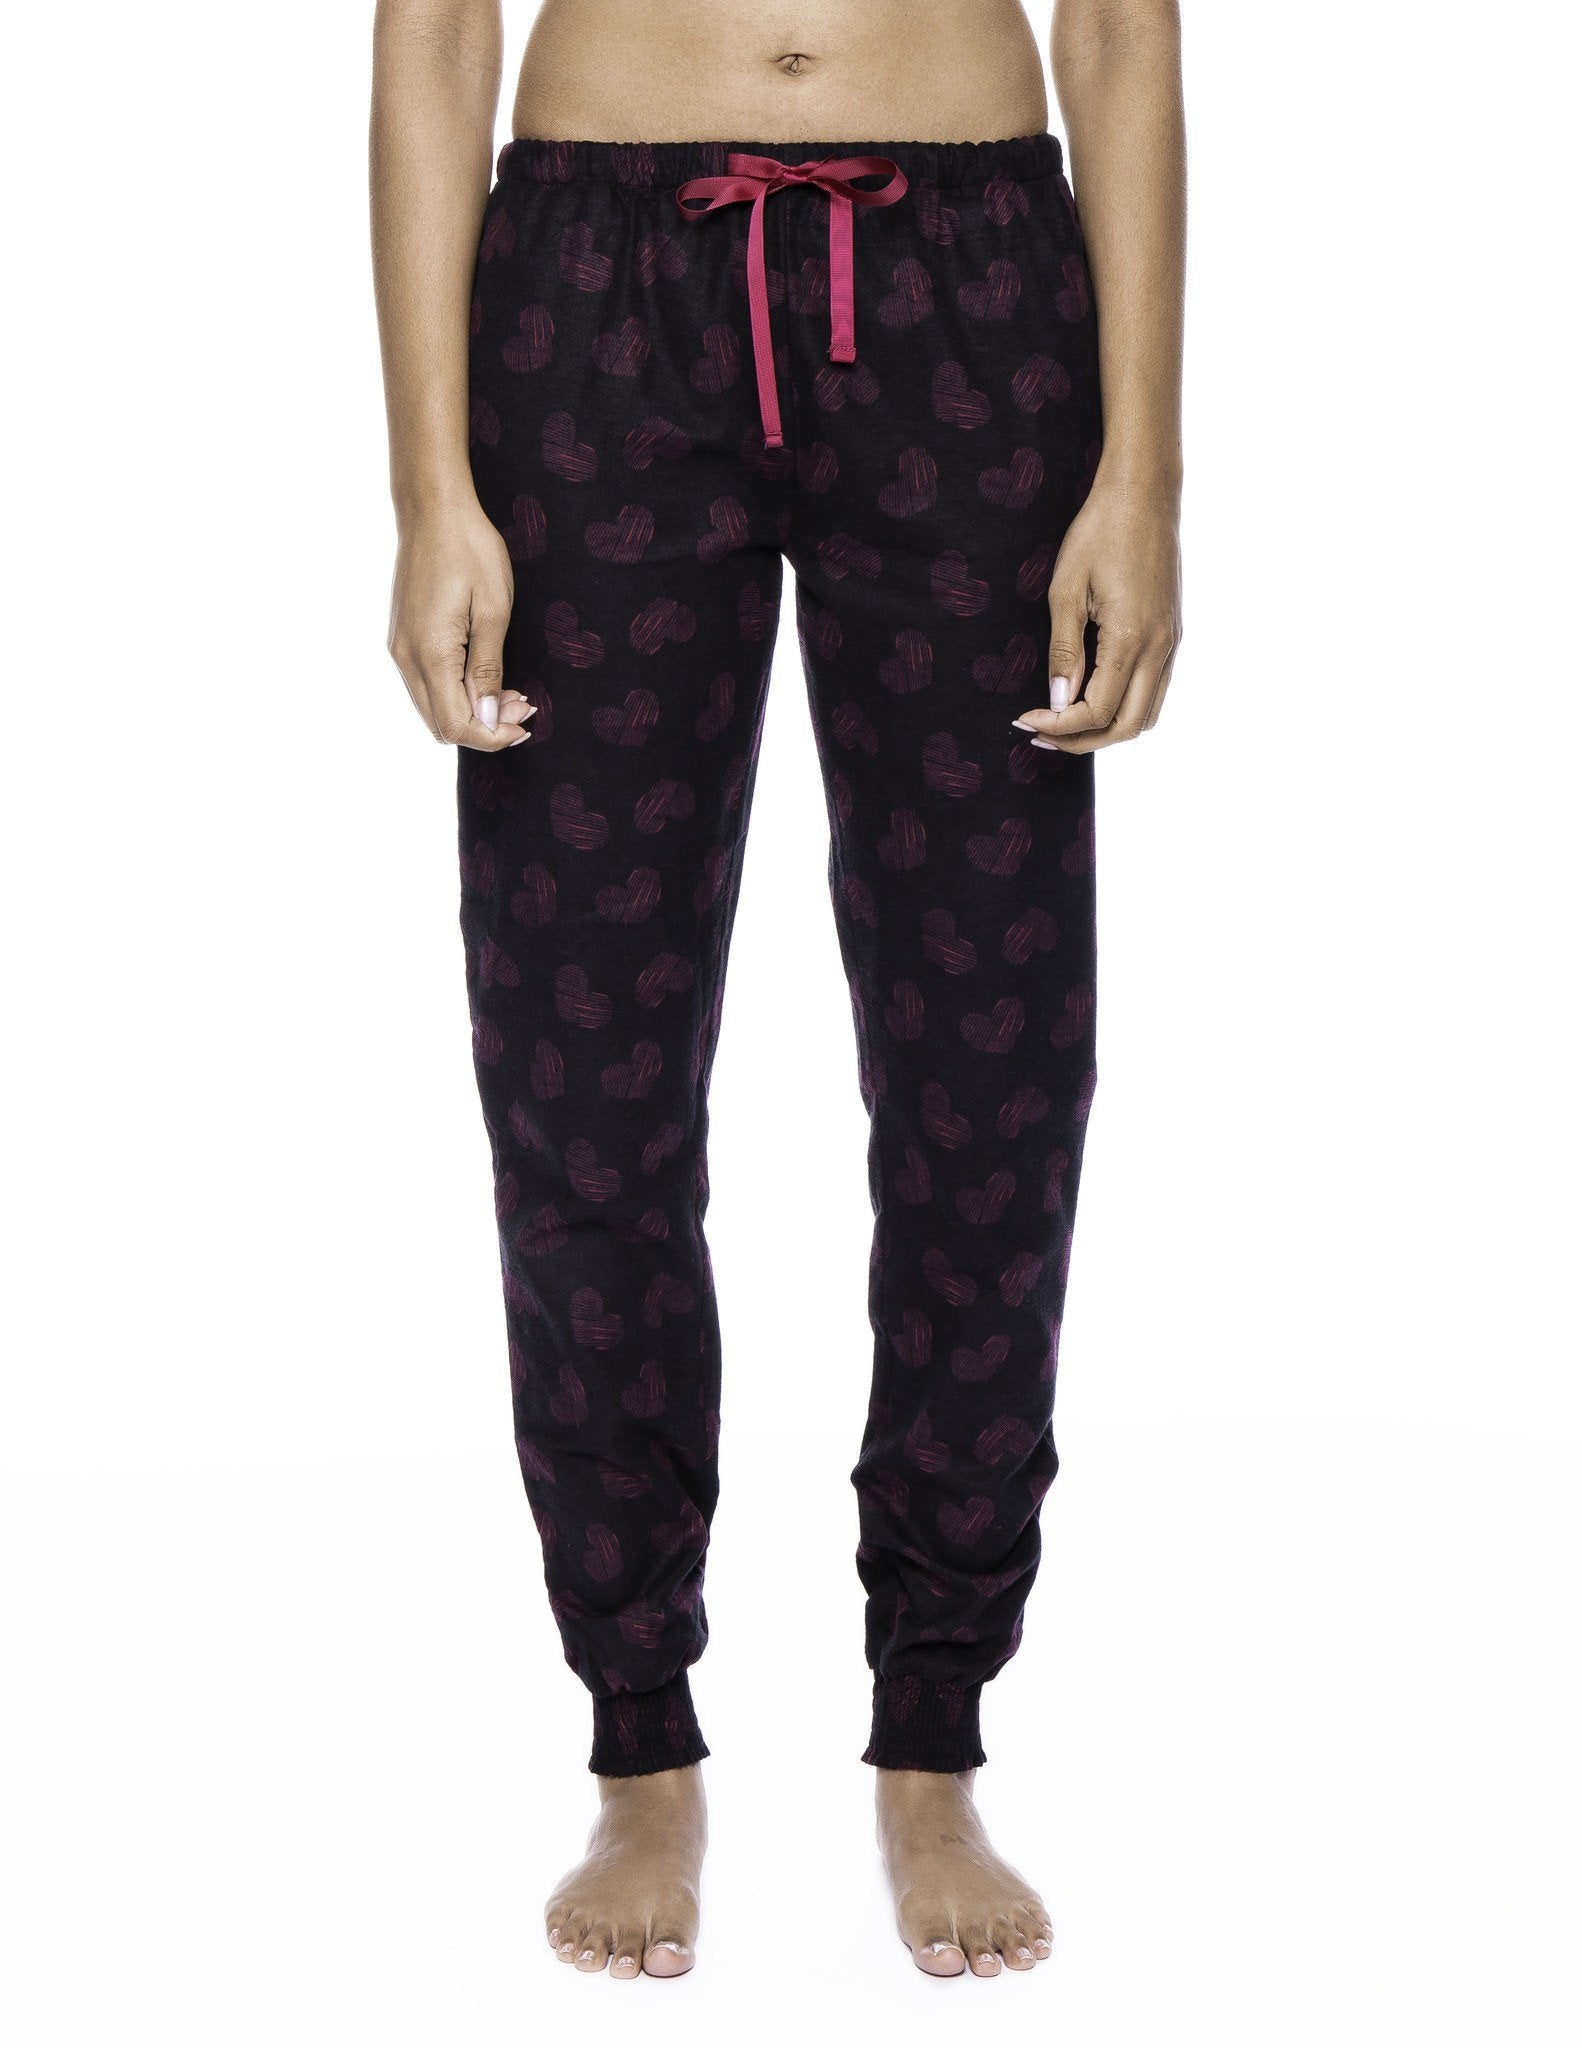 Women's Premium Flannel Jogger Lounge Pants - Hearts Black/Red